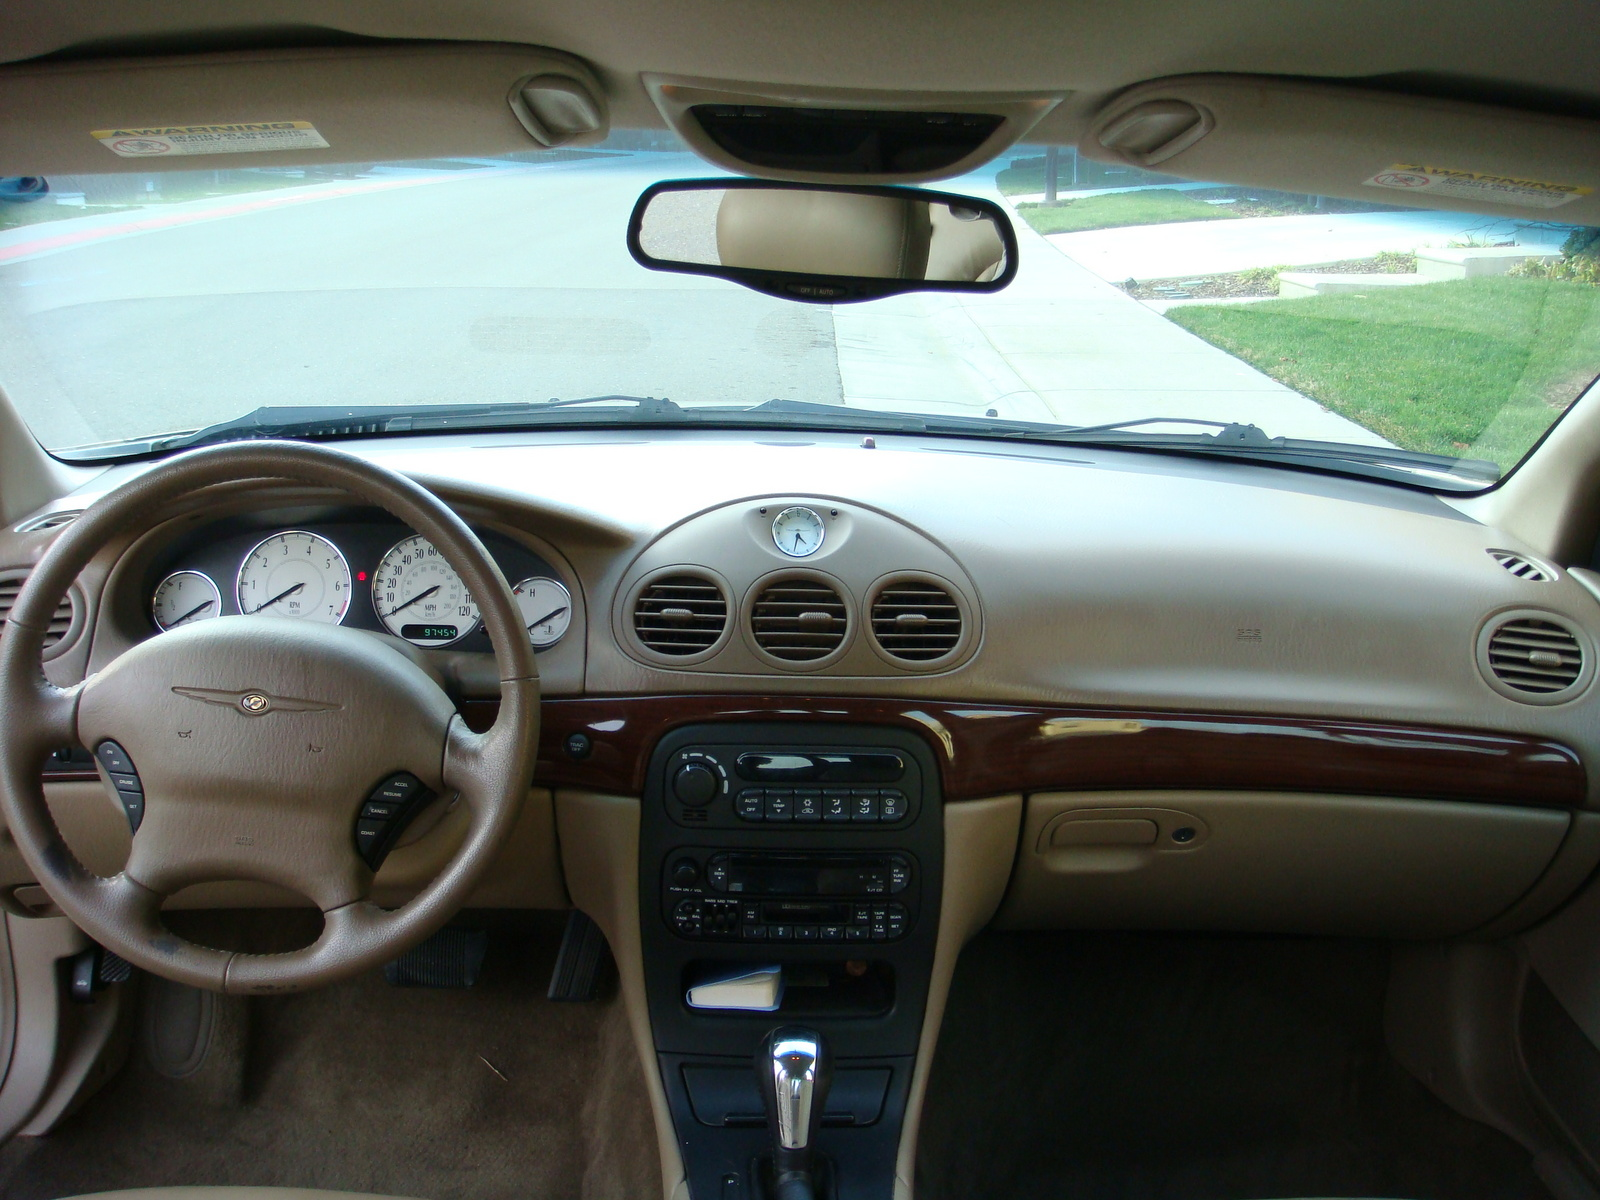 Jeep Dealers Near Me >> 2001 Chrysler 300M - Interior Pictures - CarGurus